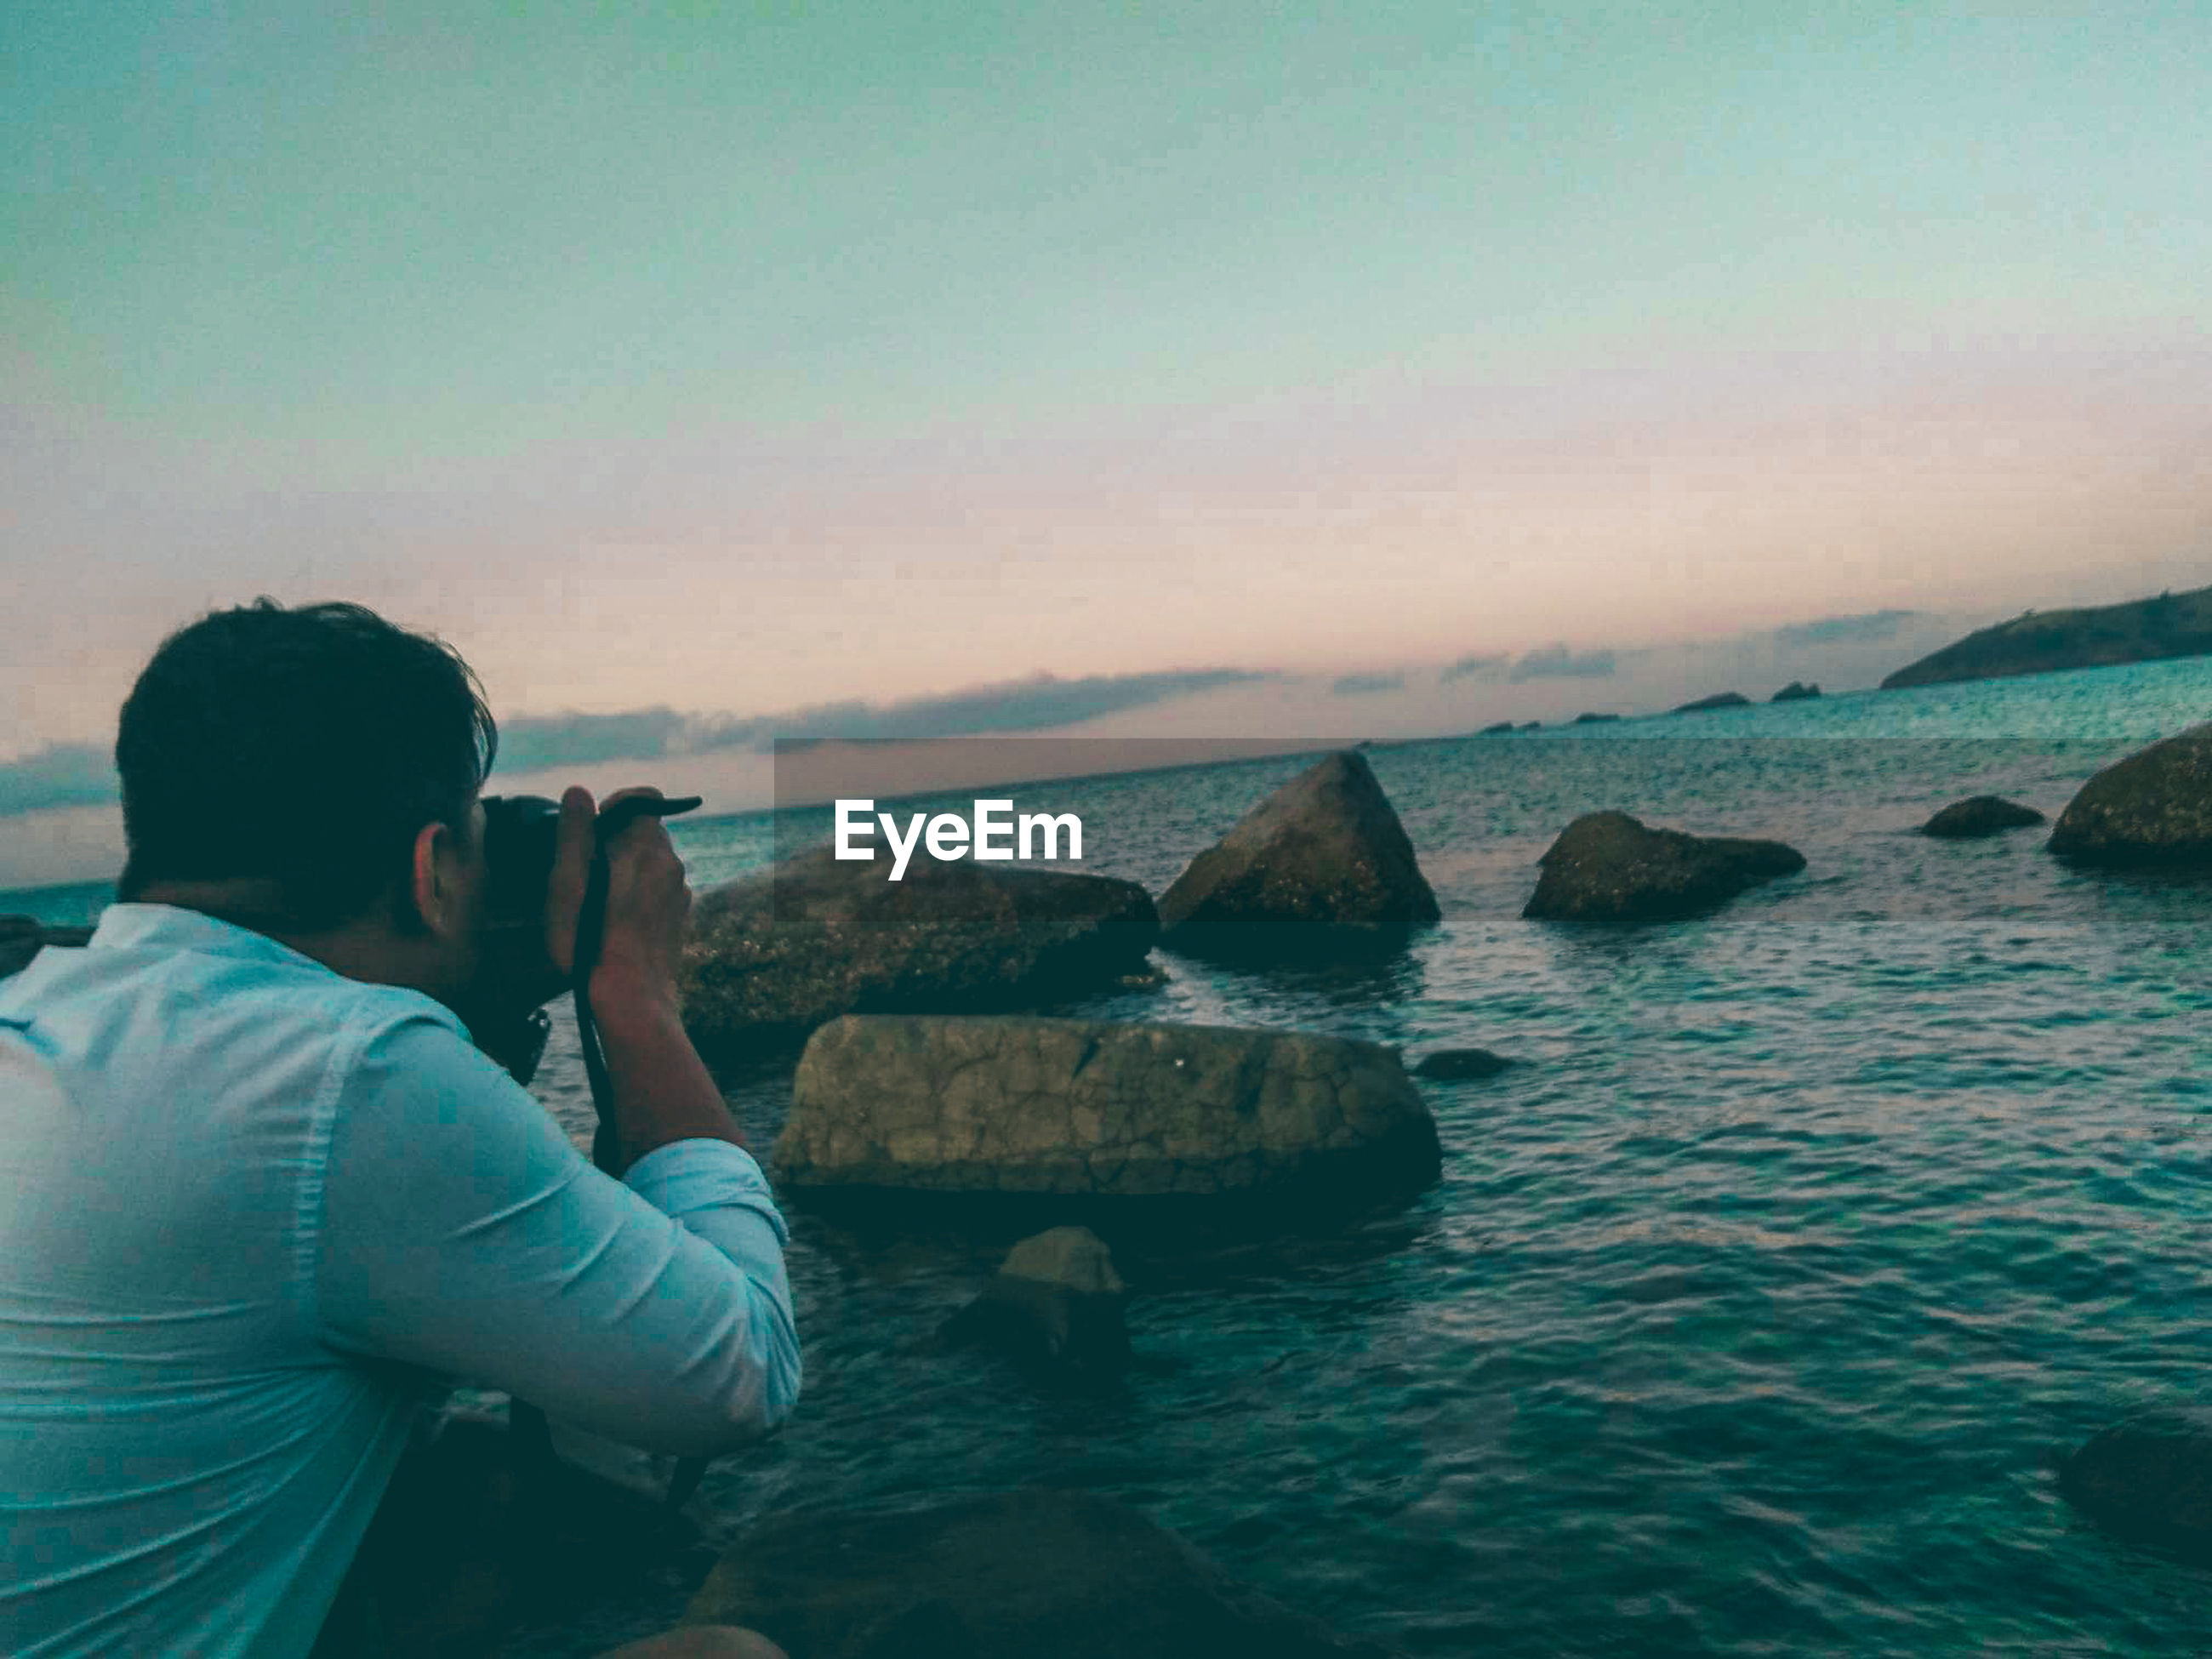 water, sea, photography themes, photographing, technology, sky, real people, activity, scenics - nature, leisure activity, lifestyles, sunset, rock, rock - object, nature, beauty in nature, solid, one person, horizon over water, wireless technology, digital camera, outdoors, photographer